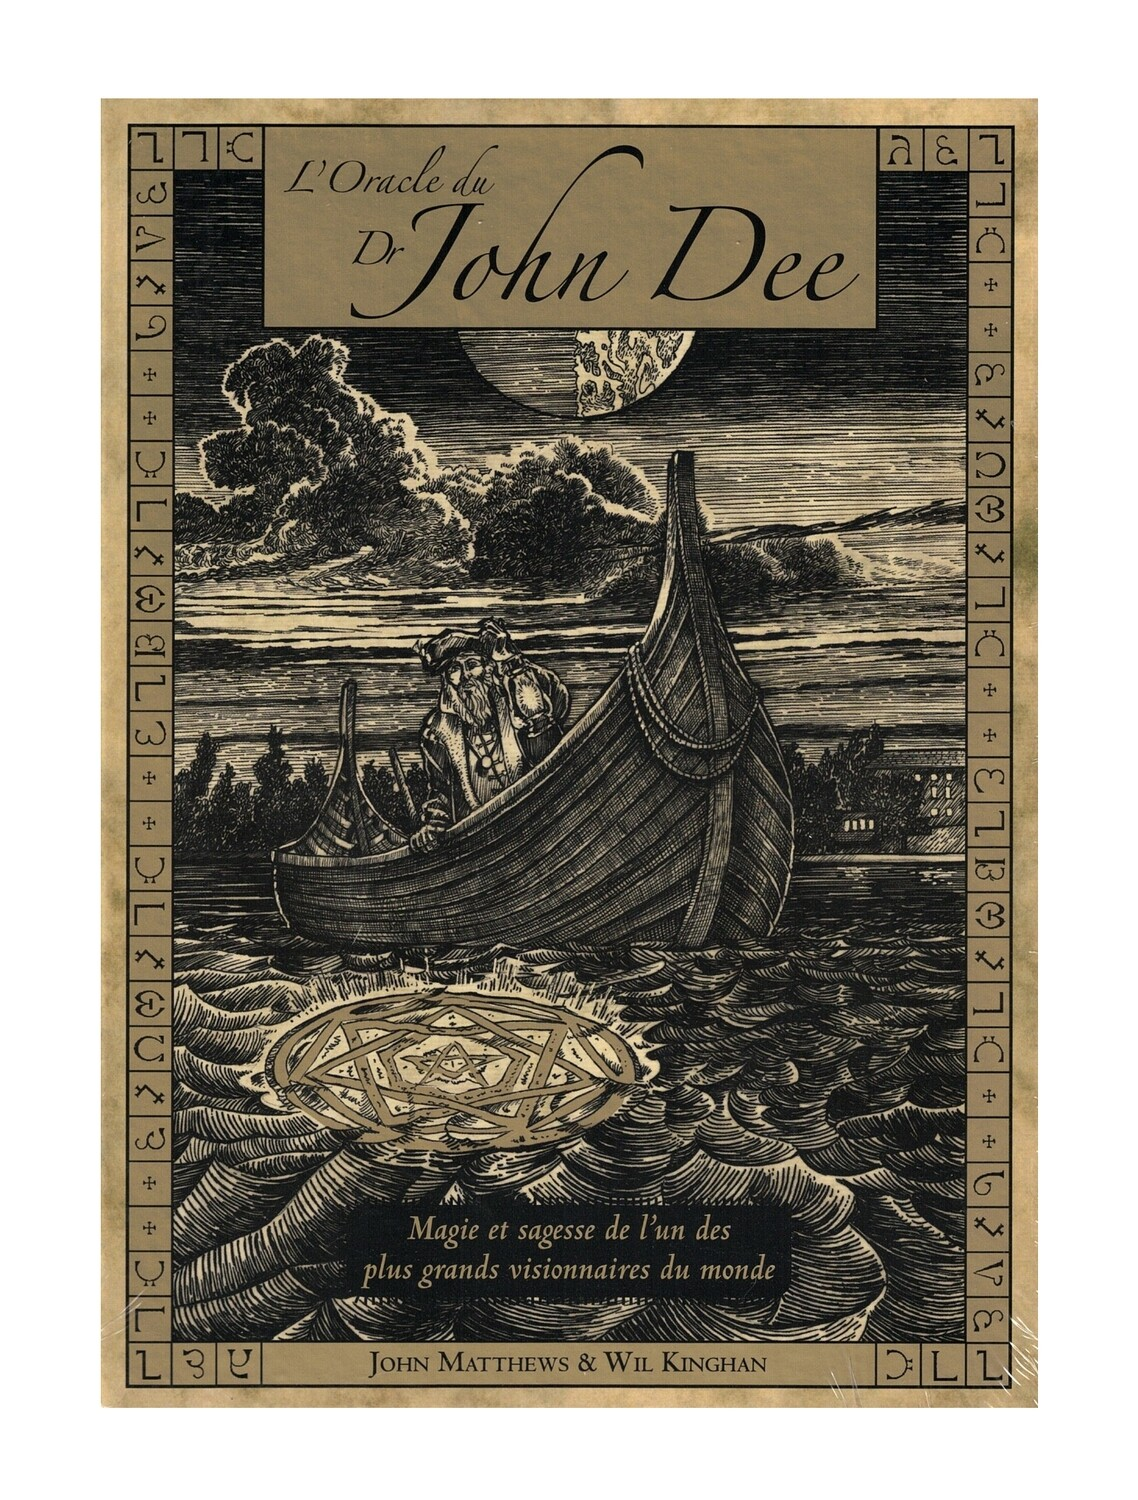 L'oracle du Dr John Dee